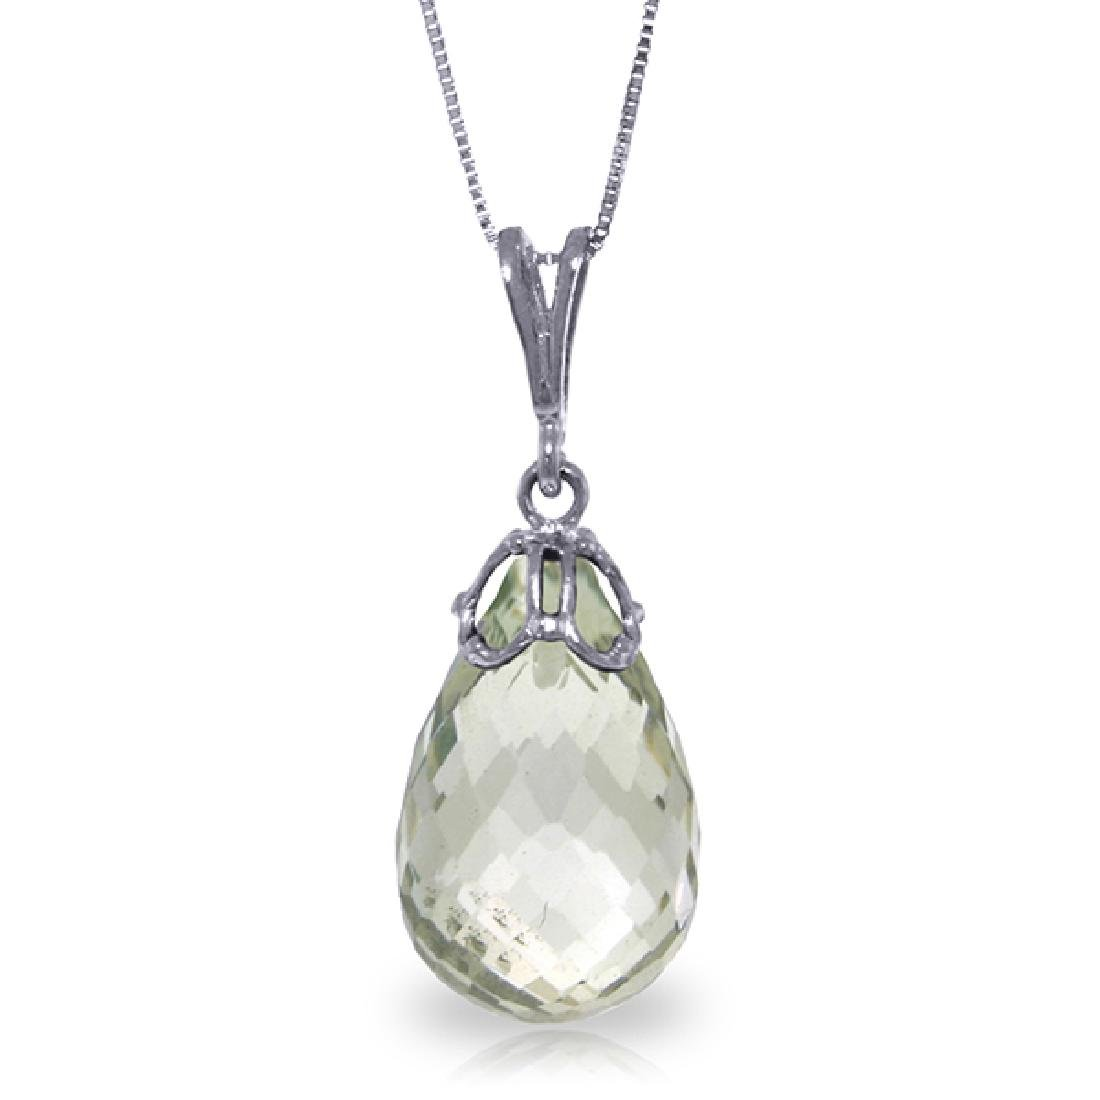 Genuine 7 ctw Green Amethyst Necklace Jewelry 14KT